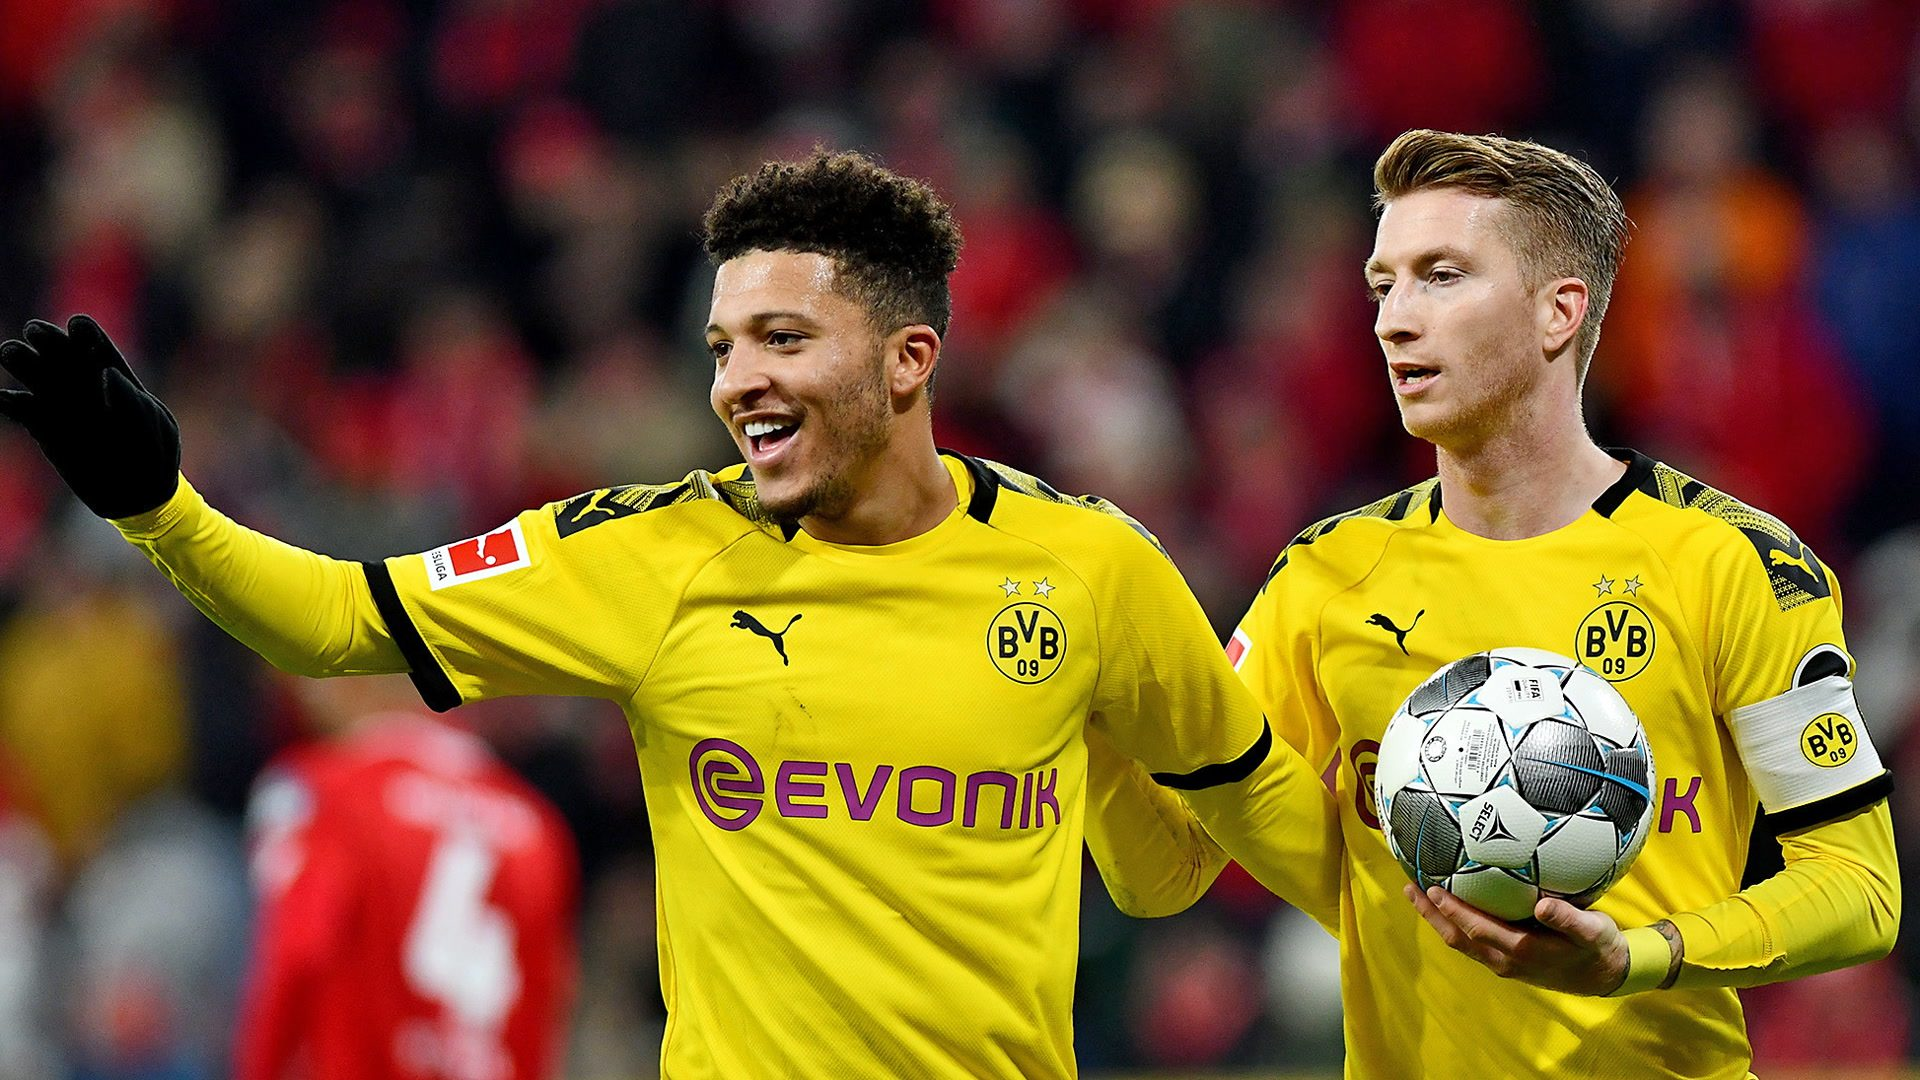 Bundesliga Marco Reus Jadon Sancho Thorgan Hazard And Nico Schulz Fire Borussia Dortmund Past Mainz